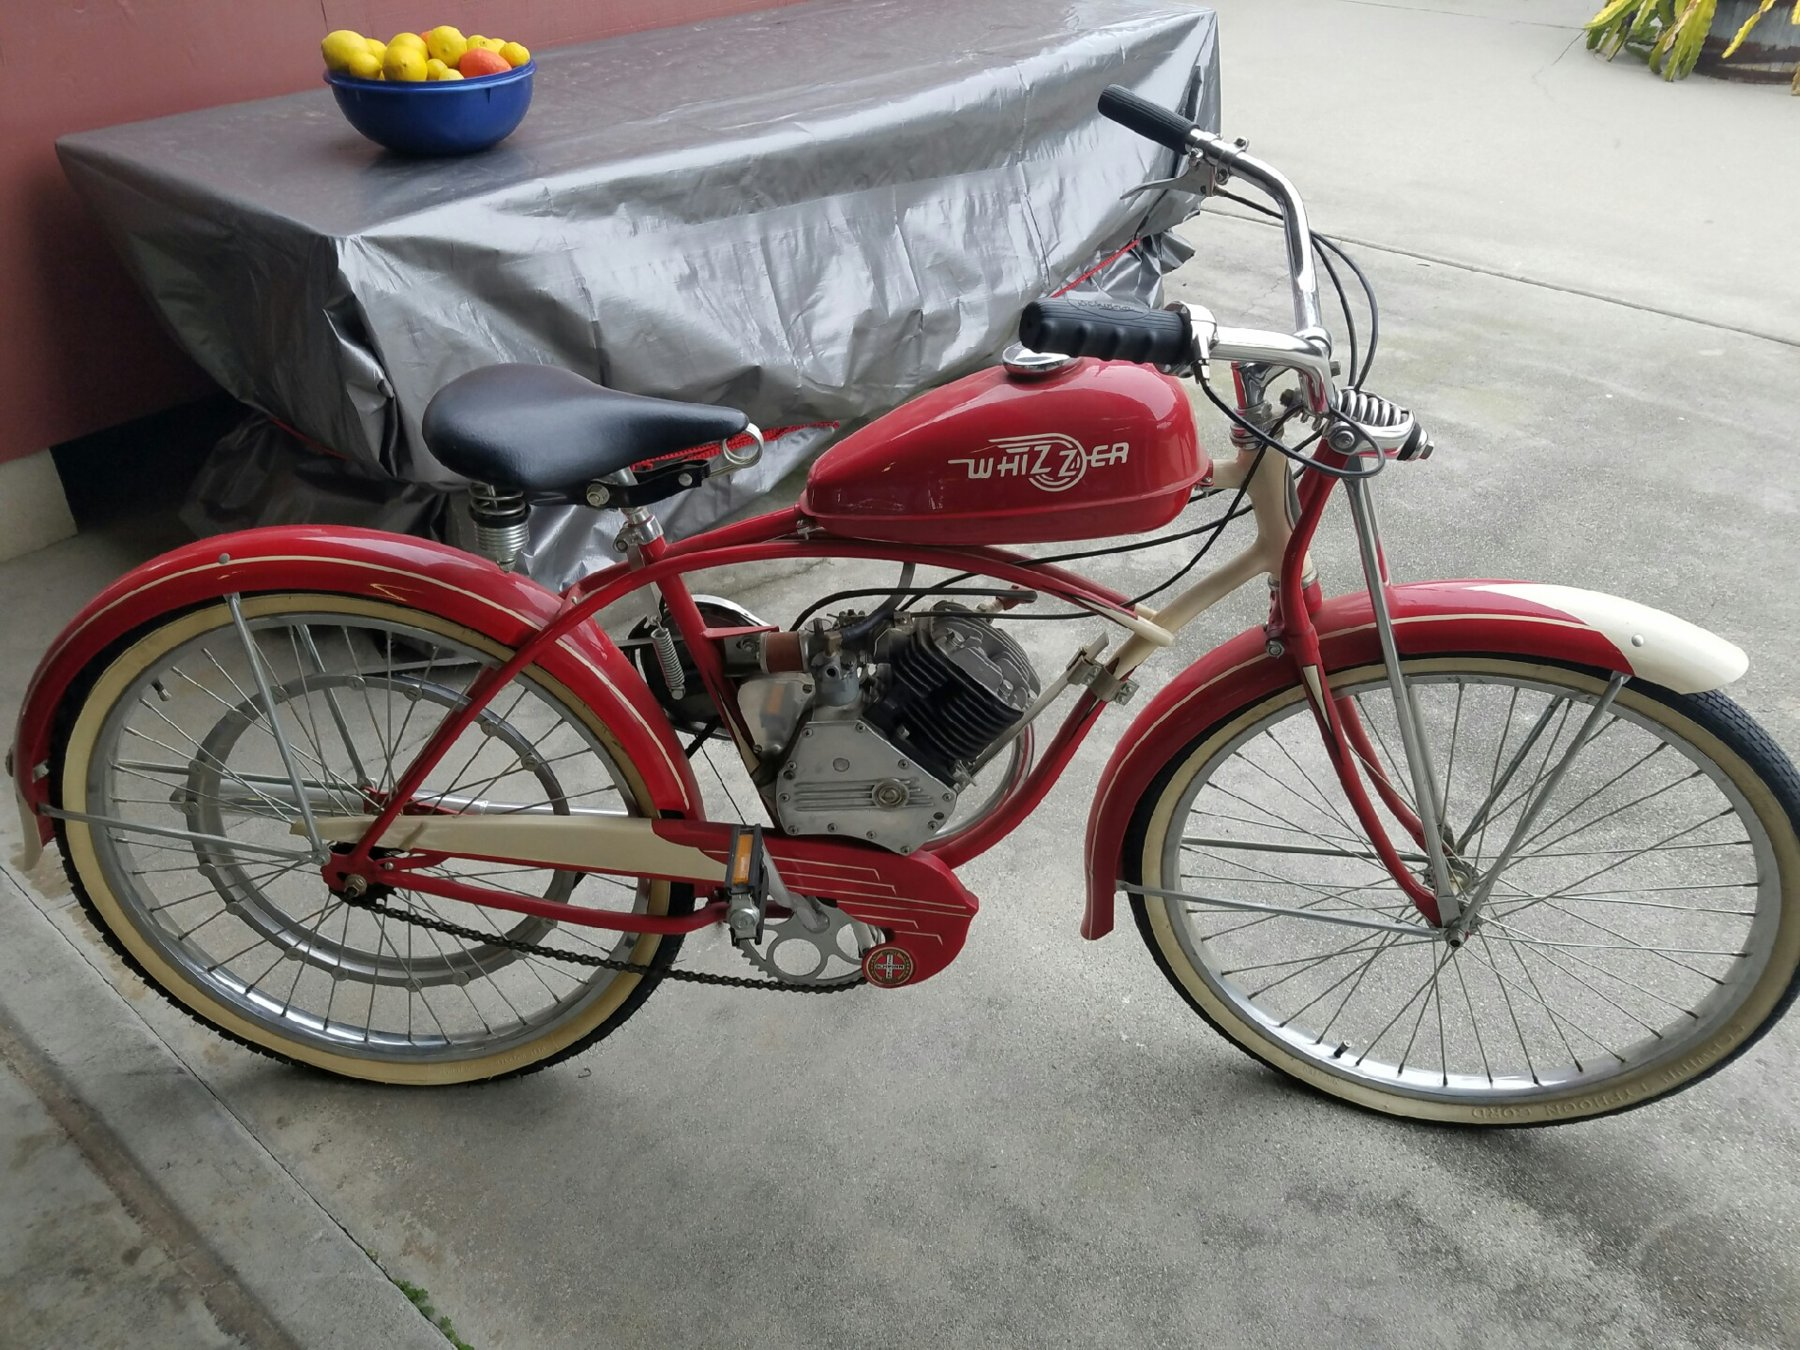 Whizzer on eBay | The Classic and Antique Bicycle Exchange